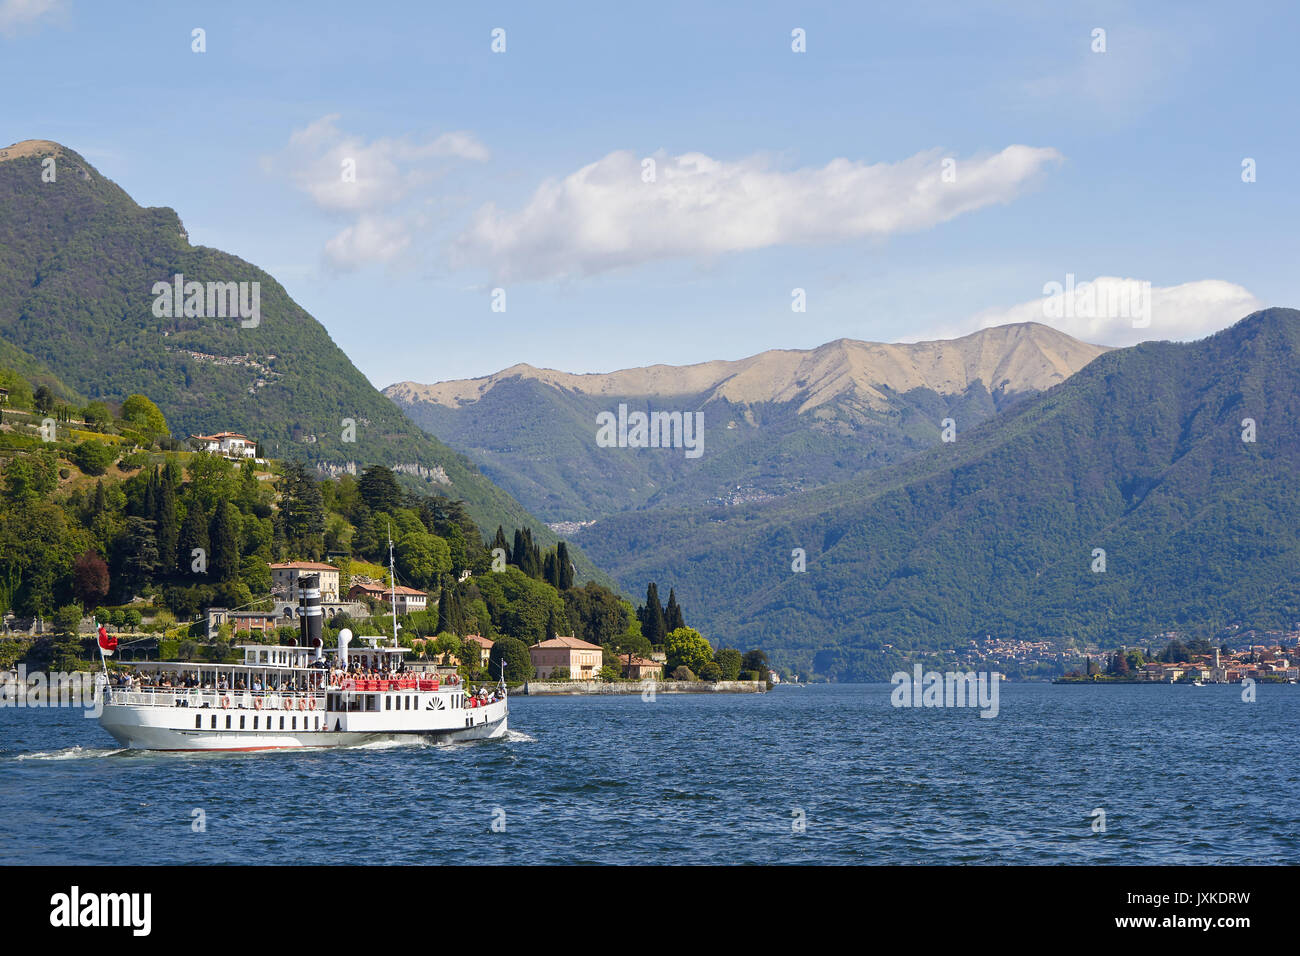 Ship leave from Cernobbio in the Como lake - Stock Image